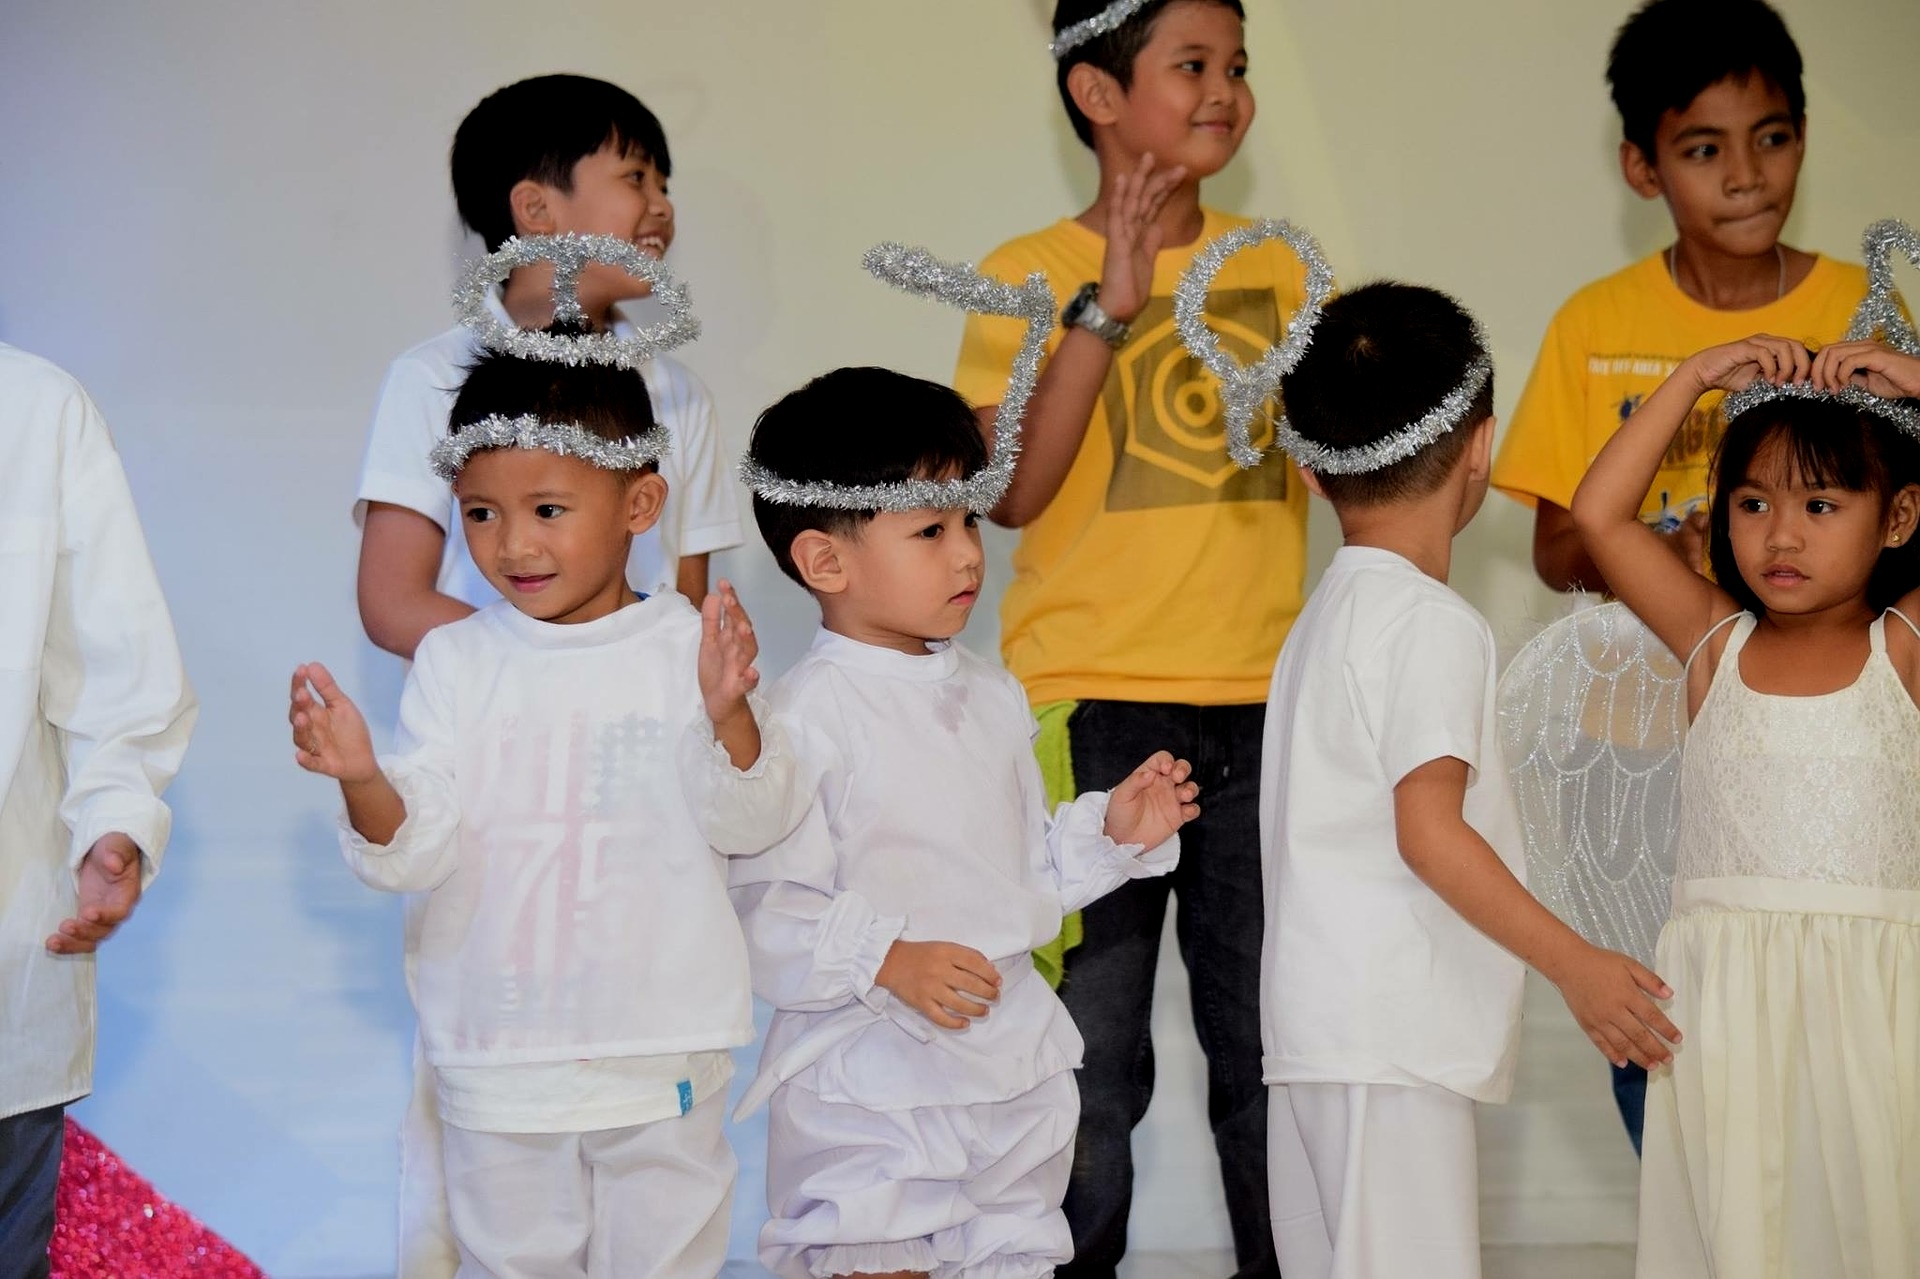 STAGE A KIDS PERFORMANCE OR PLAY -